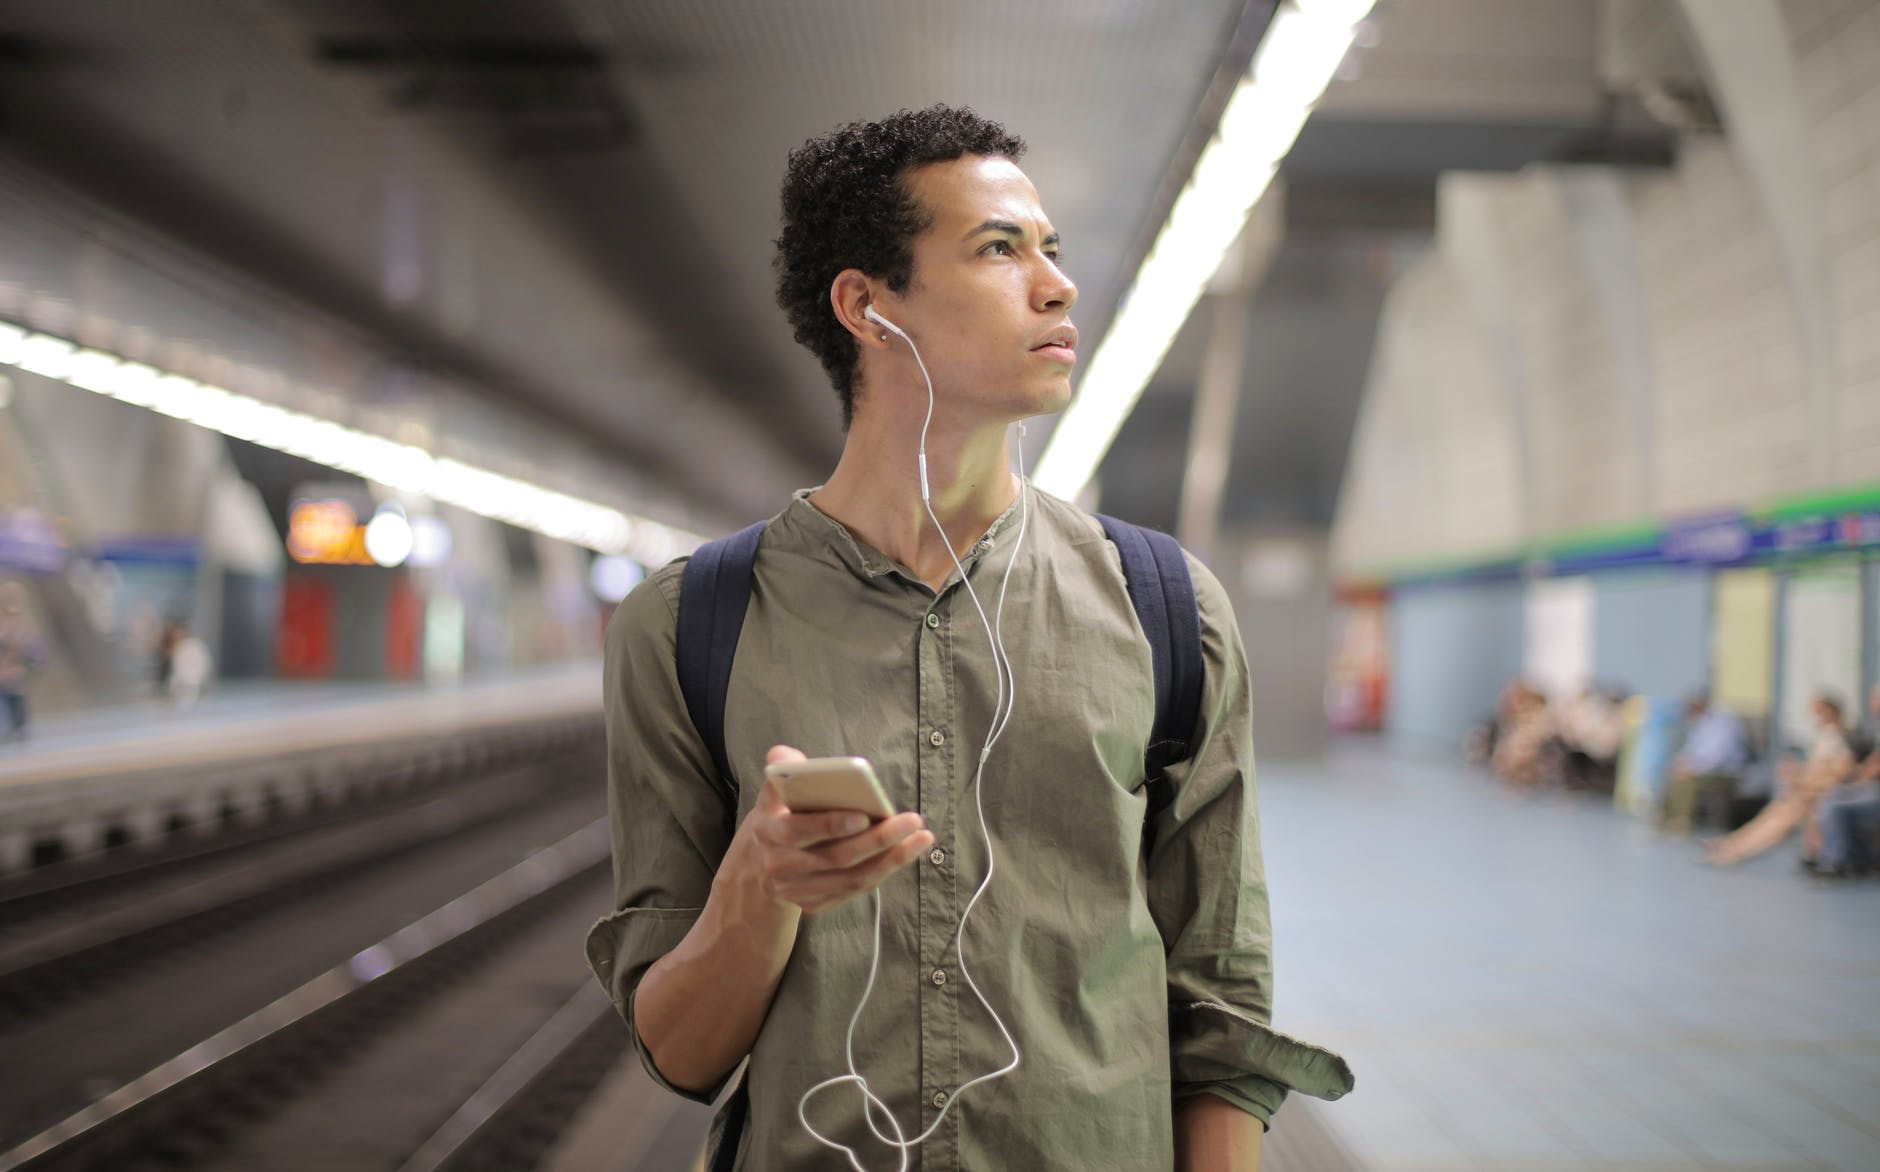 young ethnic man in earbuds listening to music while waiting for transport at contemporary subway station